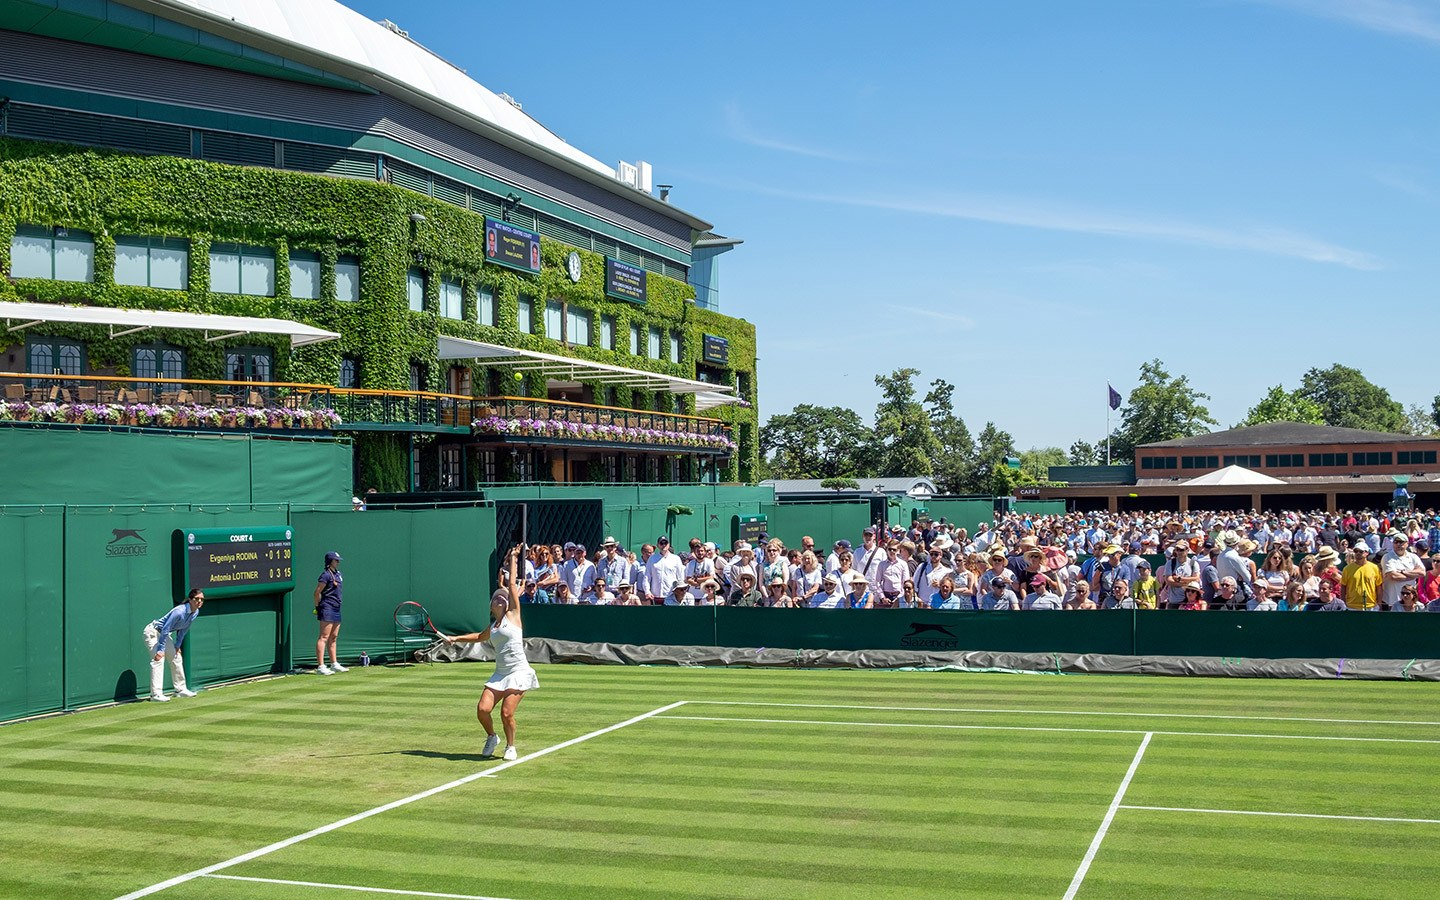 The first-timer's guide to visiting Wimbledon Tennis Championships